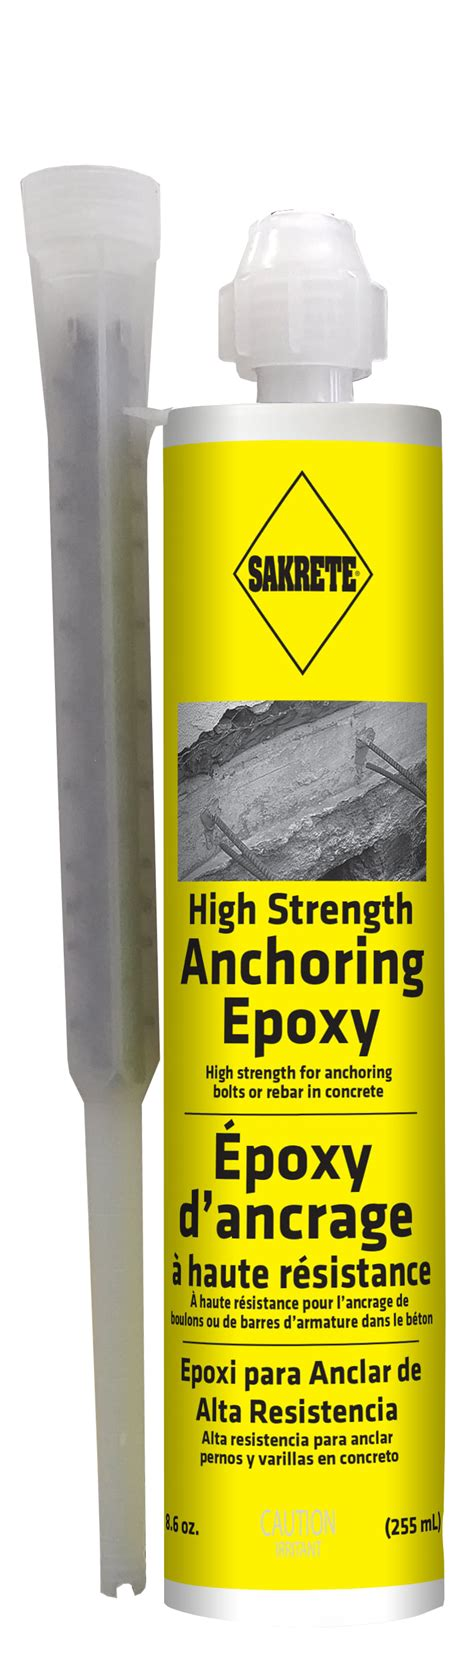 sakrete high strength anchoring epoxy